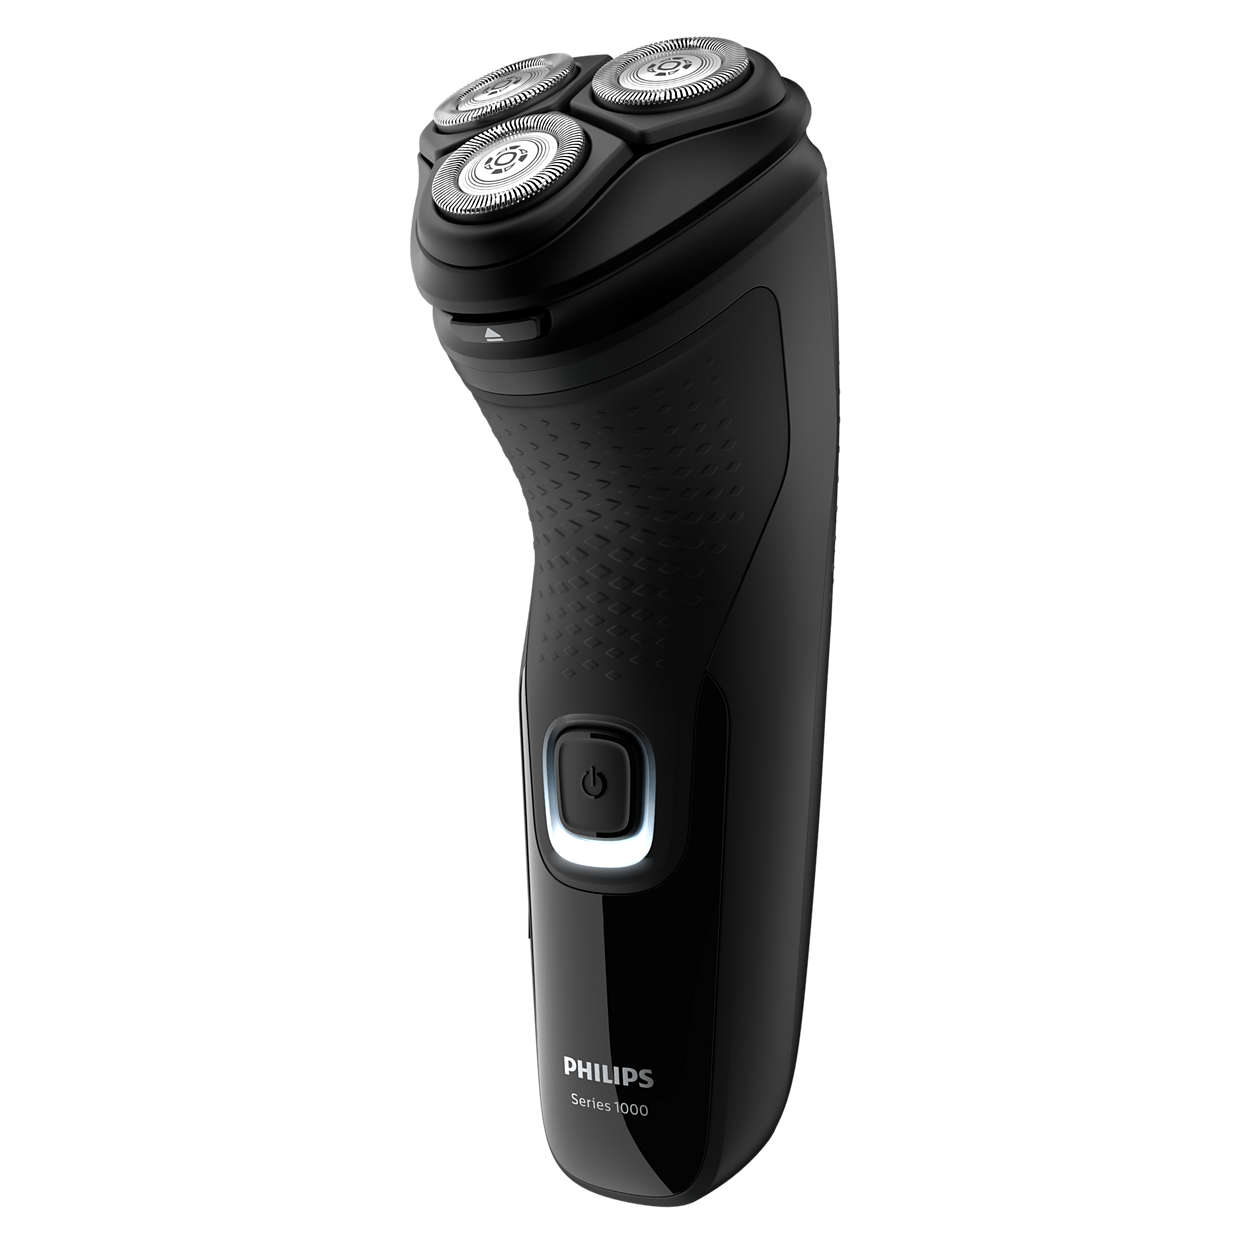 Shaver Philips S1232-41 , rotary electric shaver, rechargeable battery